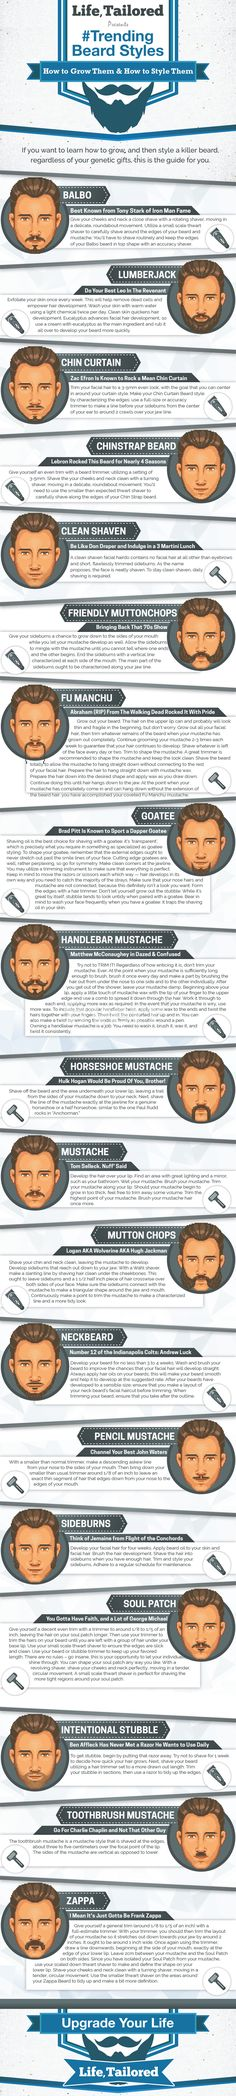 Men's beard styles that are super dope http://lifetailored.com/style/hairstyle/beard-styles-infographic/